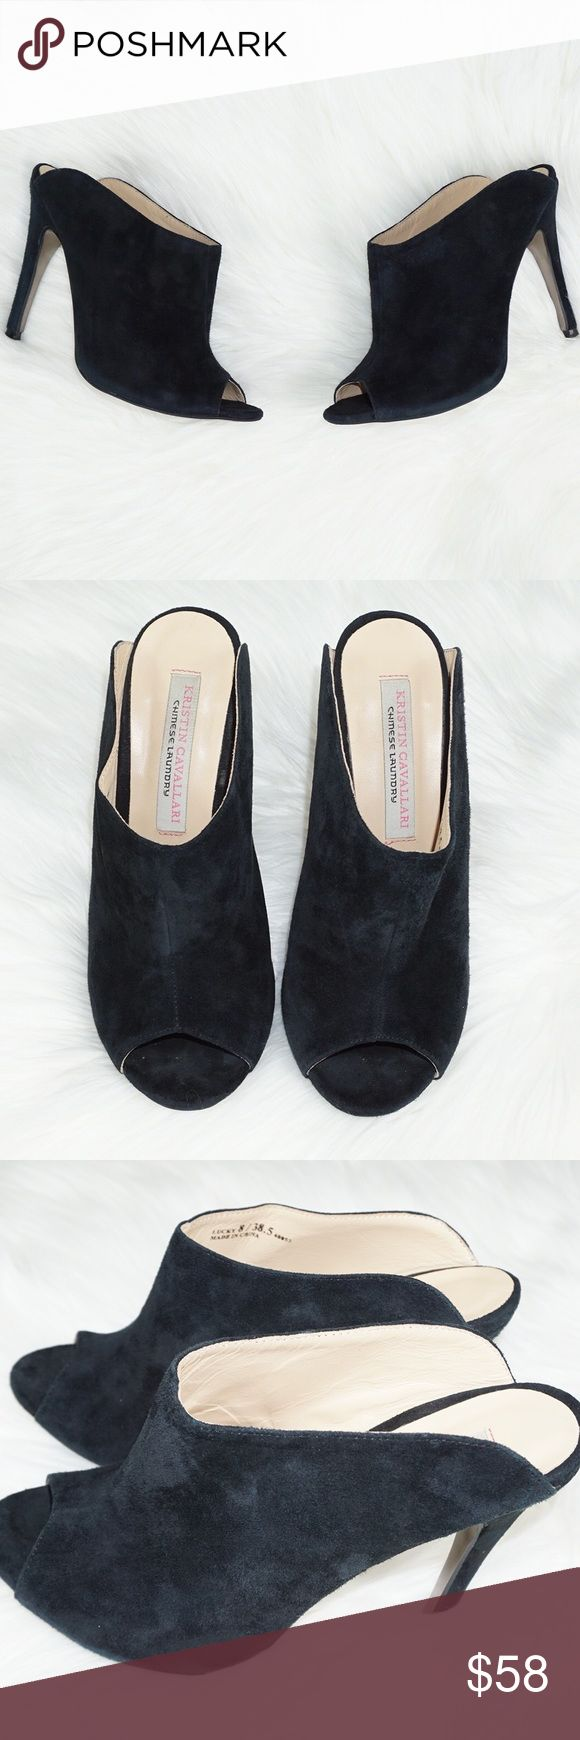 """Kristin Cavallari Chinese Laundry Lucky Heels Size: 8 Condition: Pre-owned; Excellent! Measurements: Heel Height 5""""  Please check out my other designer items! Chinese Laundry Shoes Heels"""